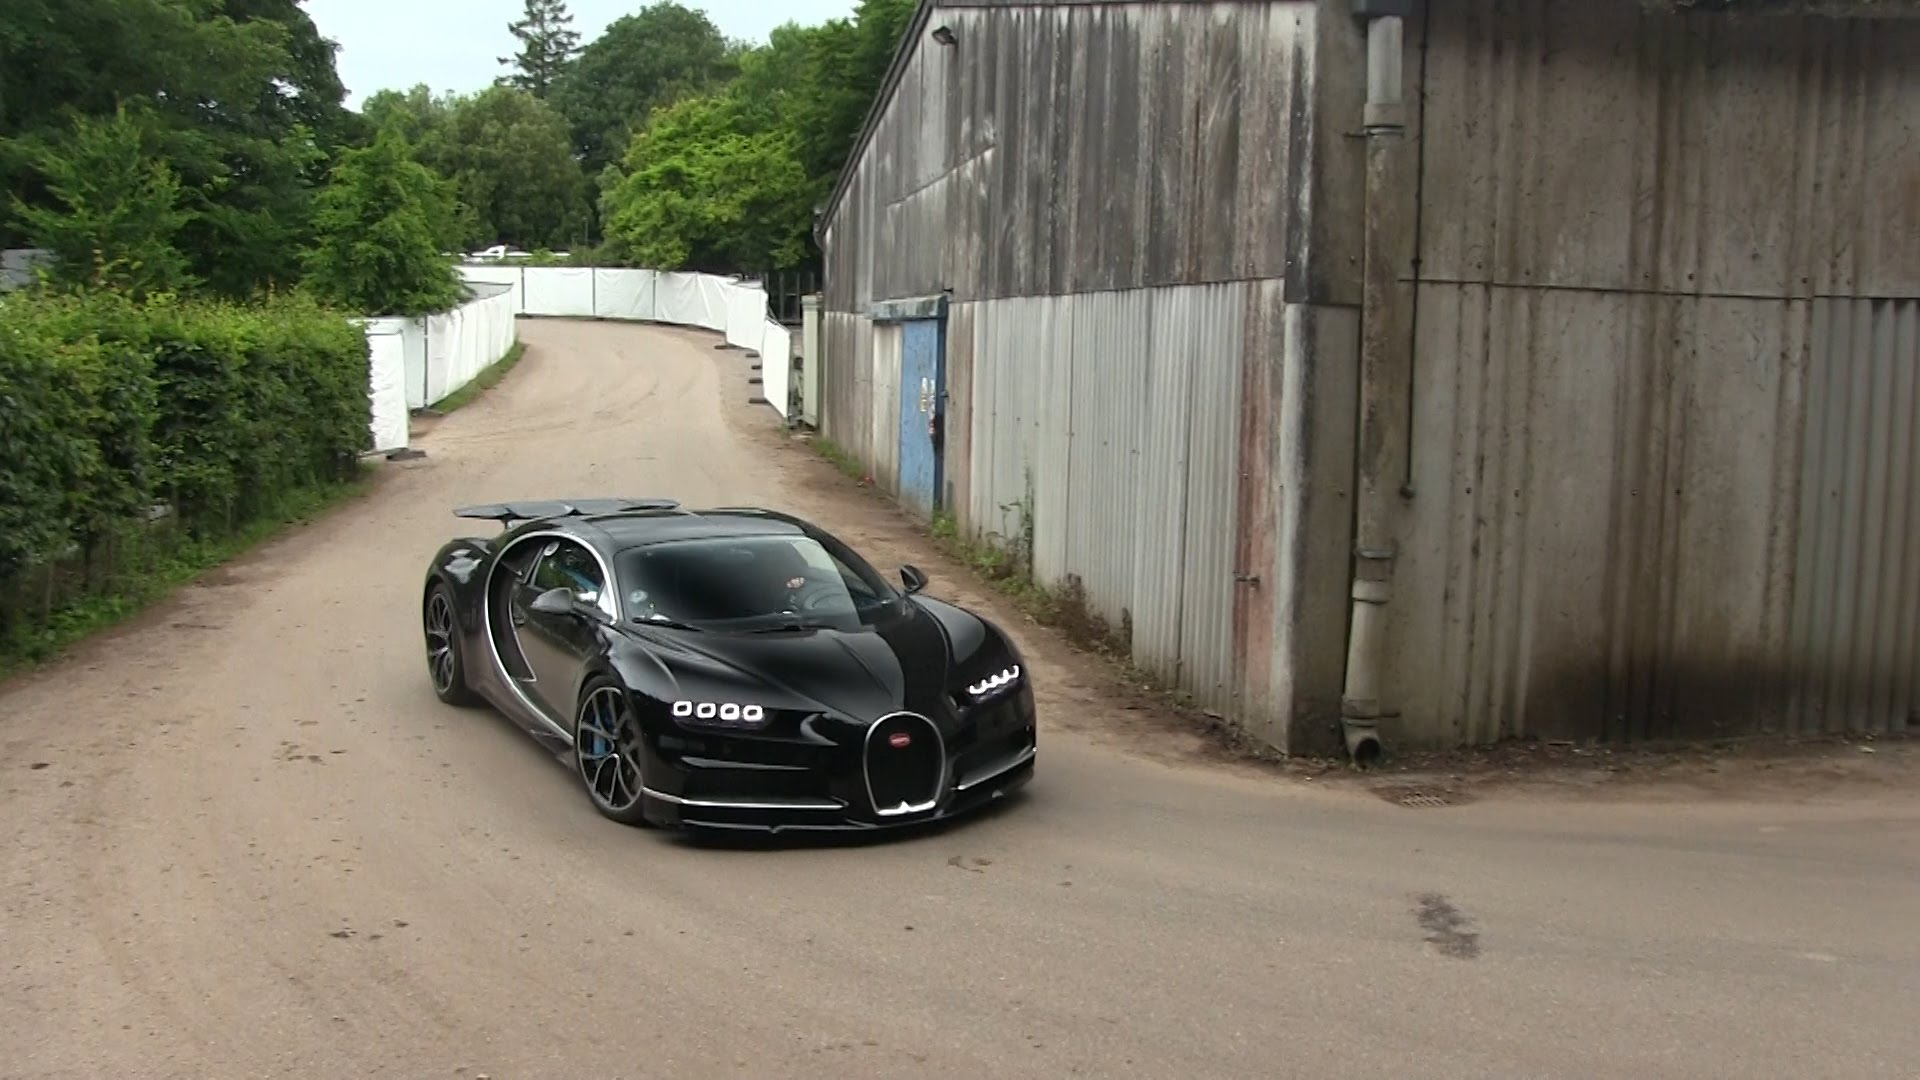 1500HP Bugatti Chiron at Goodwood